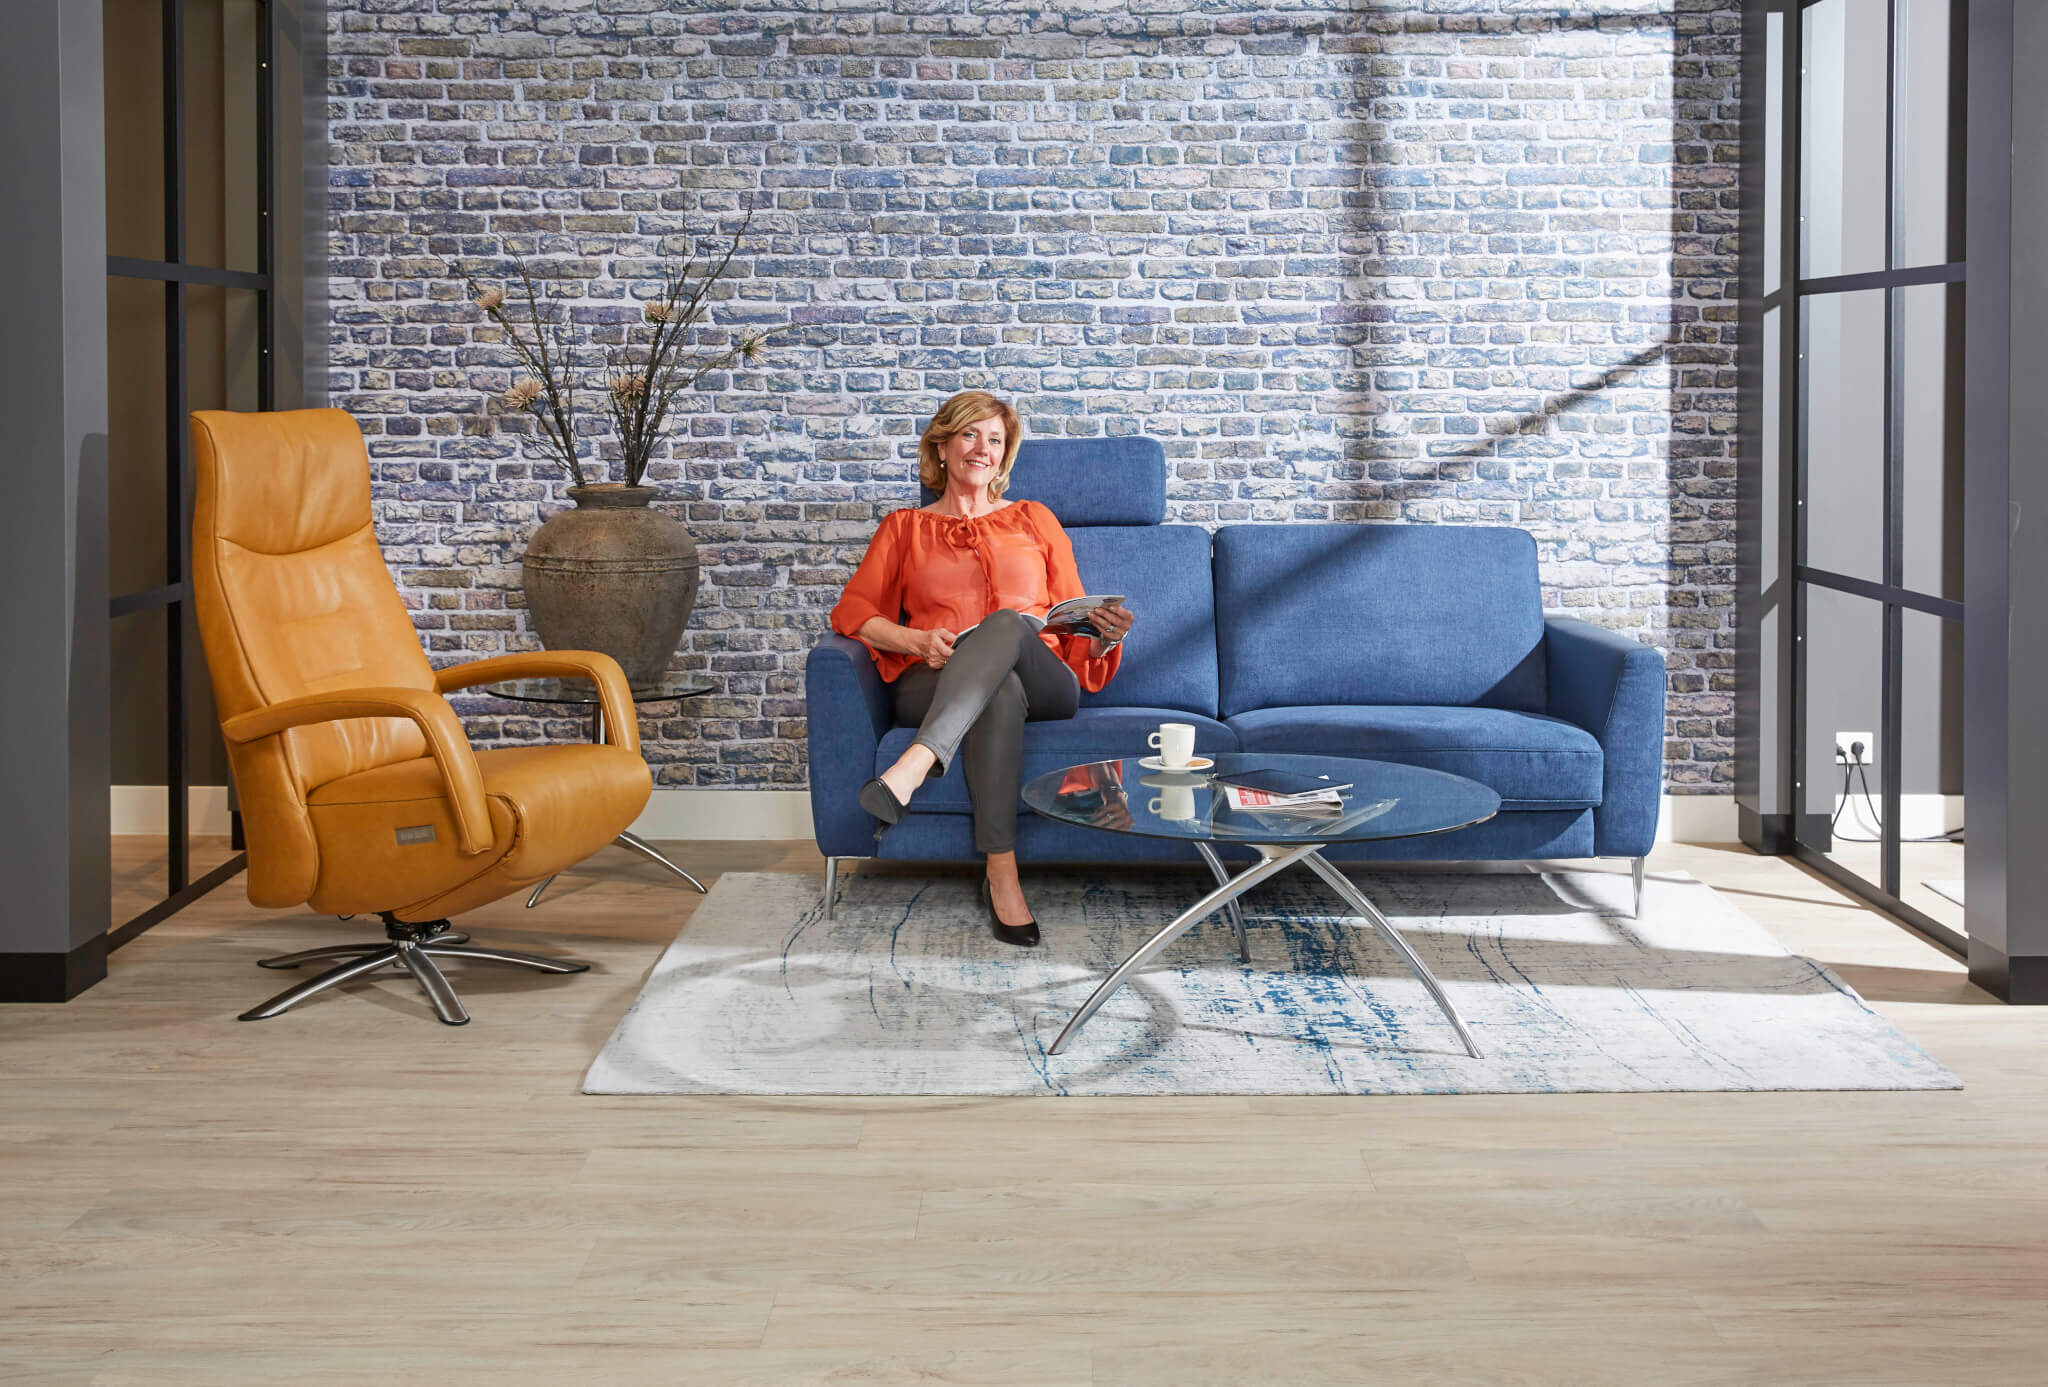 Blauwe bank showroom met model 1